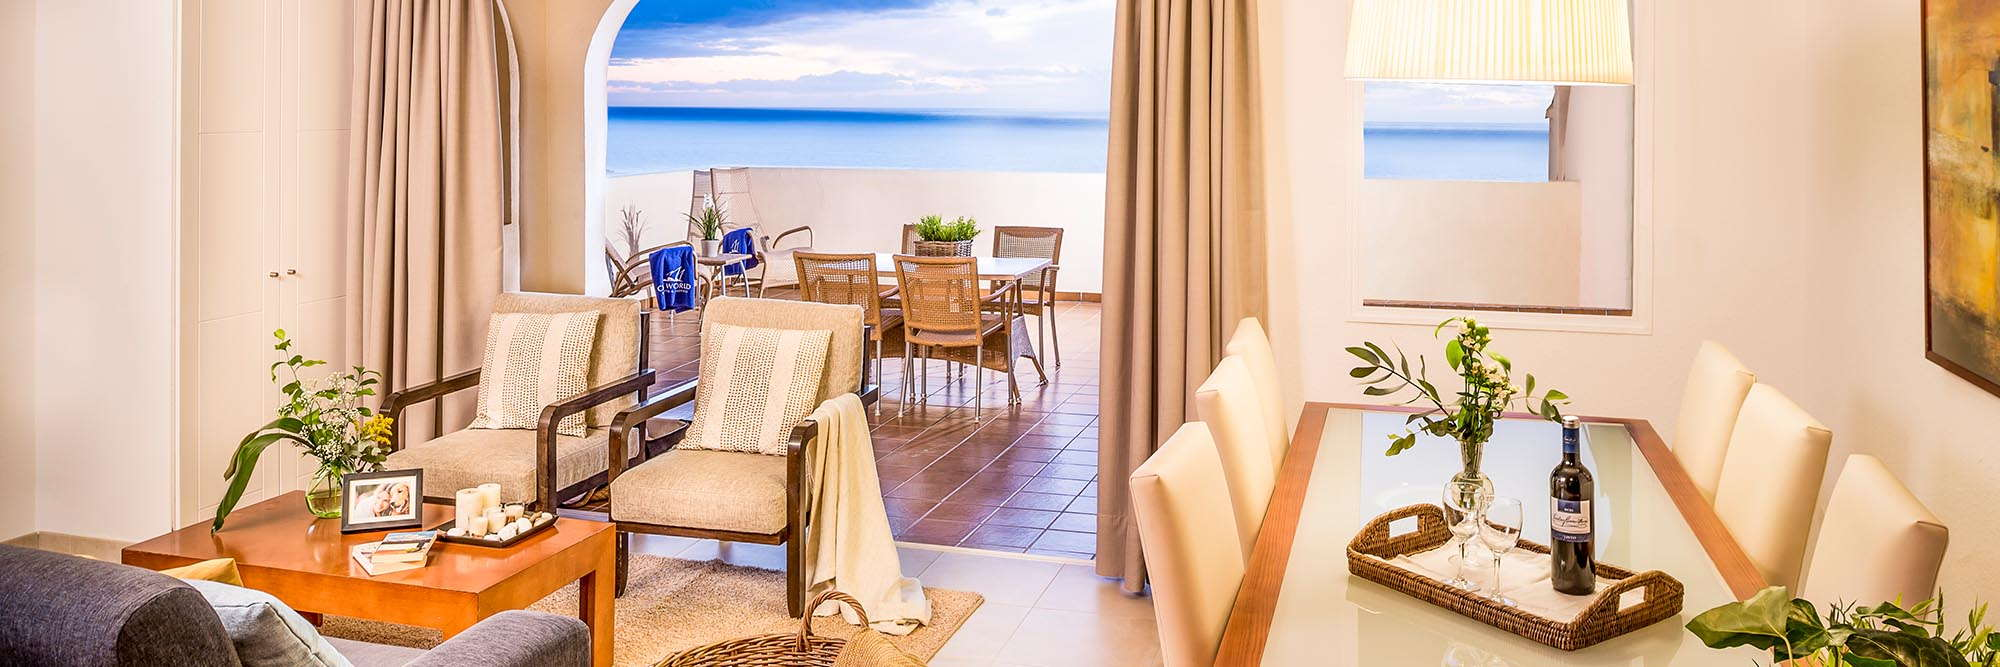 Relax and Indulge at Monterey in Tenerife